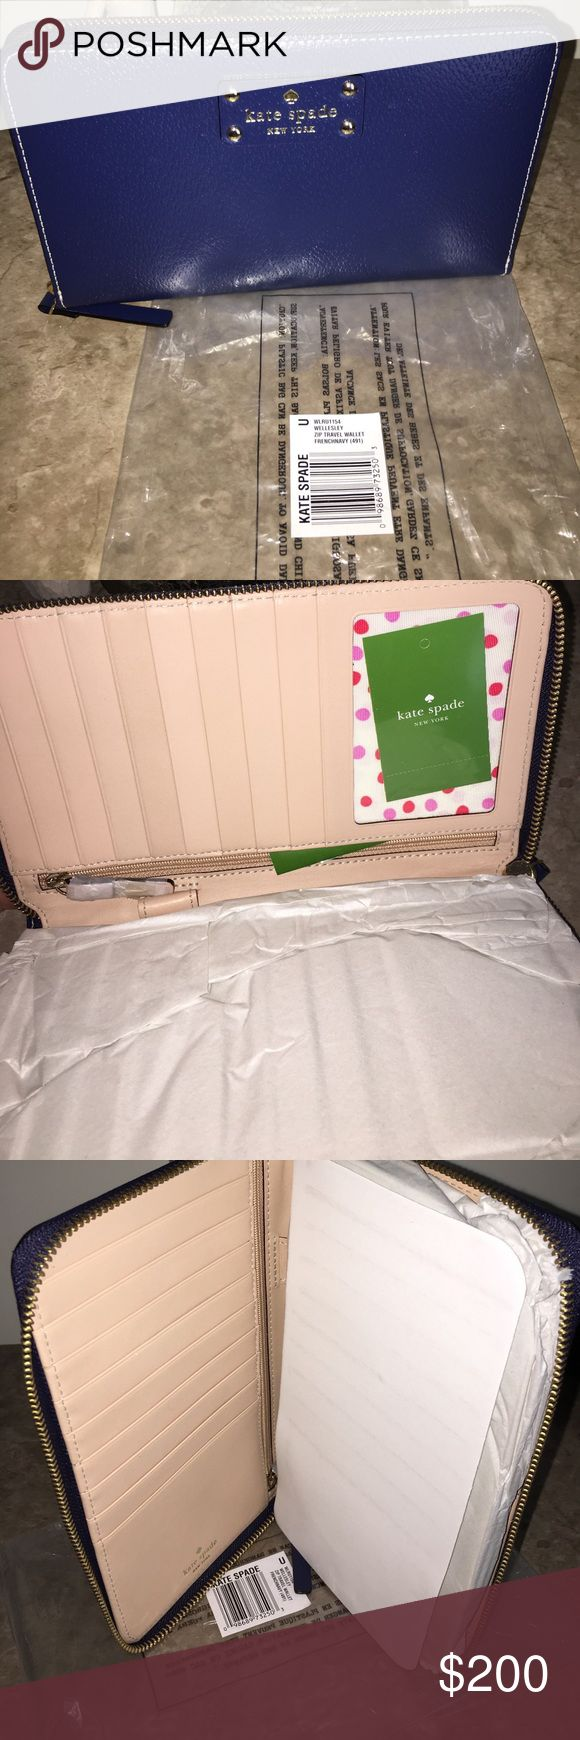 NWT Kate Spade Travel Wallet Authentic NWT Kate Spade Wellesley Zip Travel Wallet. FrenchNavy kate spade Bags Wallets